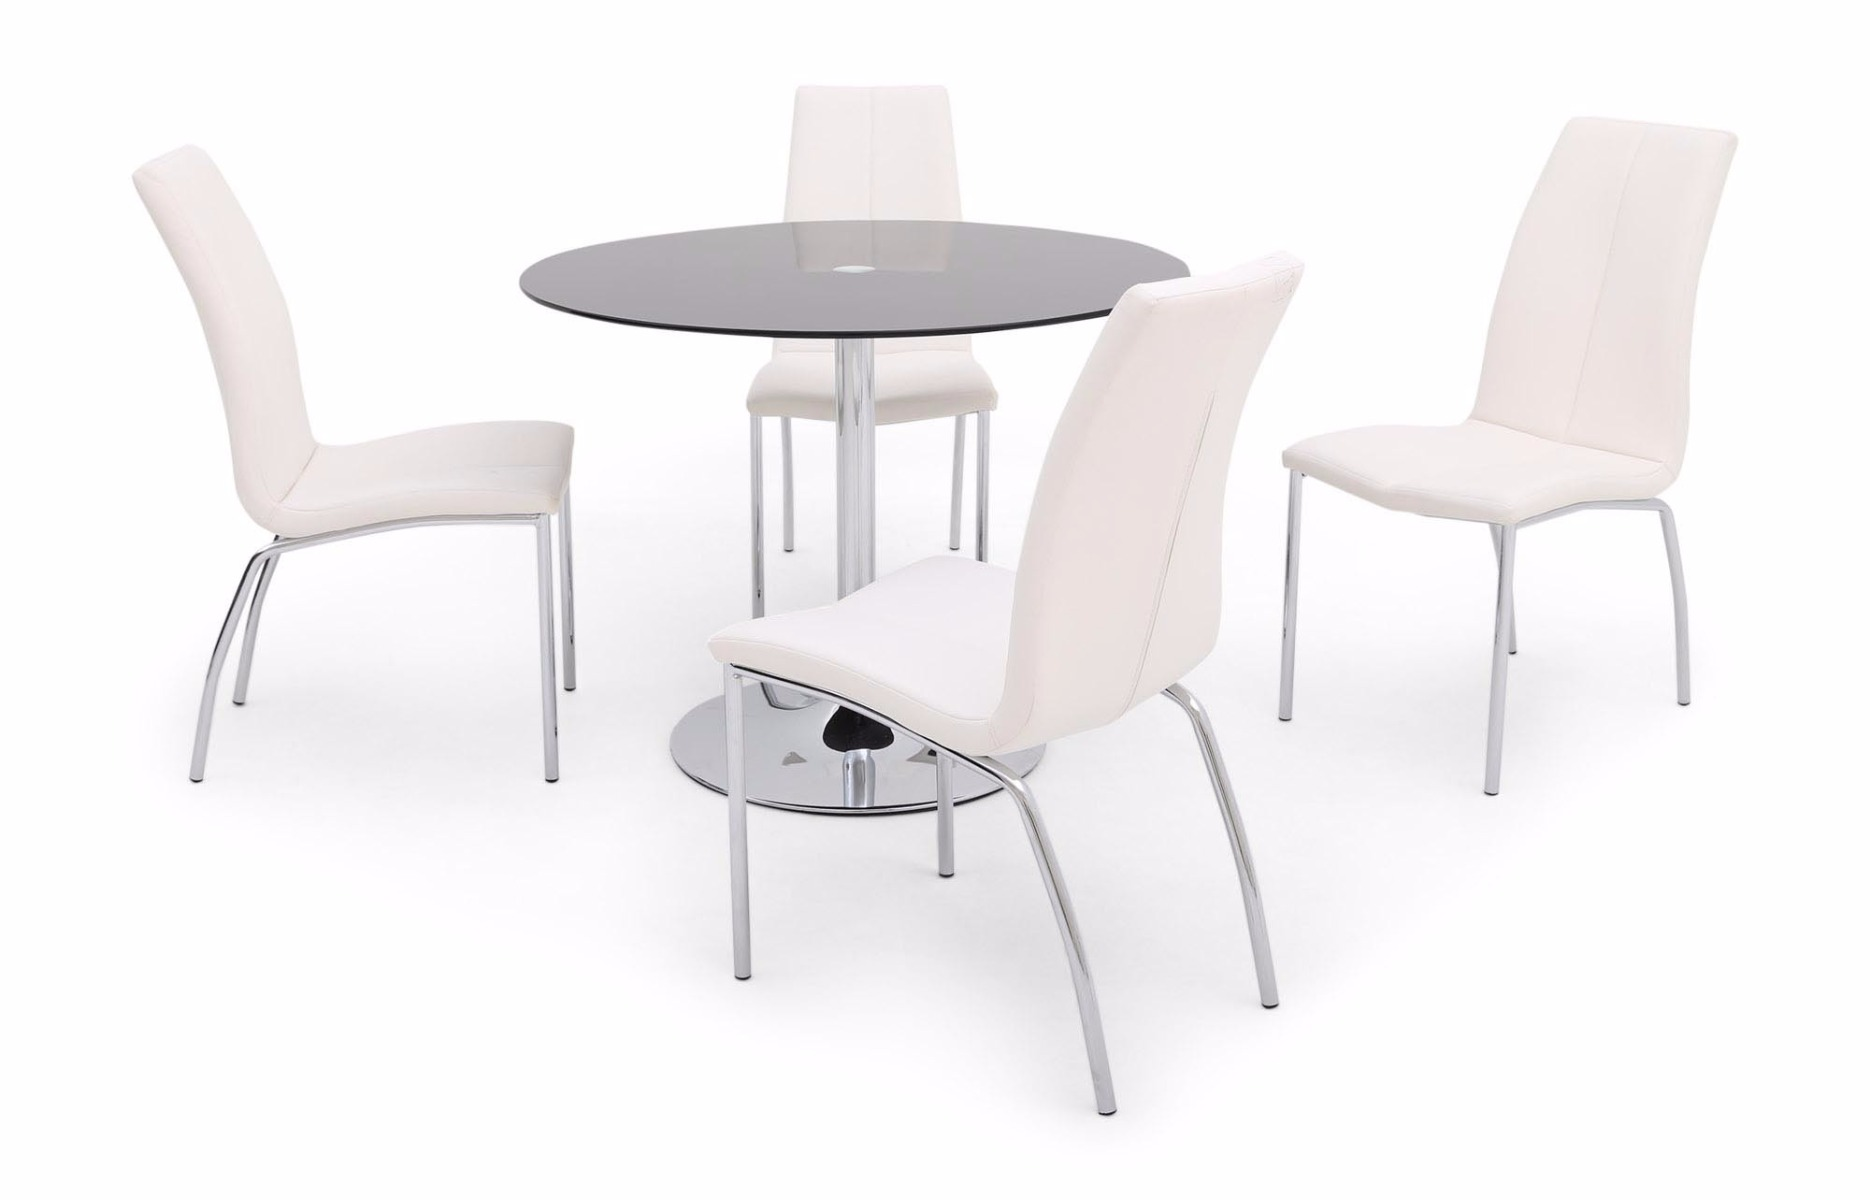 https://www.firstfurniture.co.uk/pub/media/catalog/product/e/l/elena_dining_table_black_ava_chair_white_3.jpg